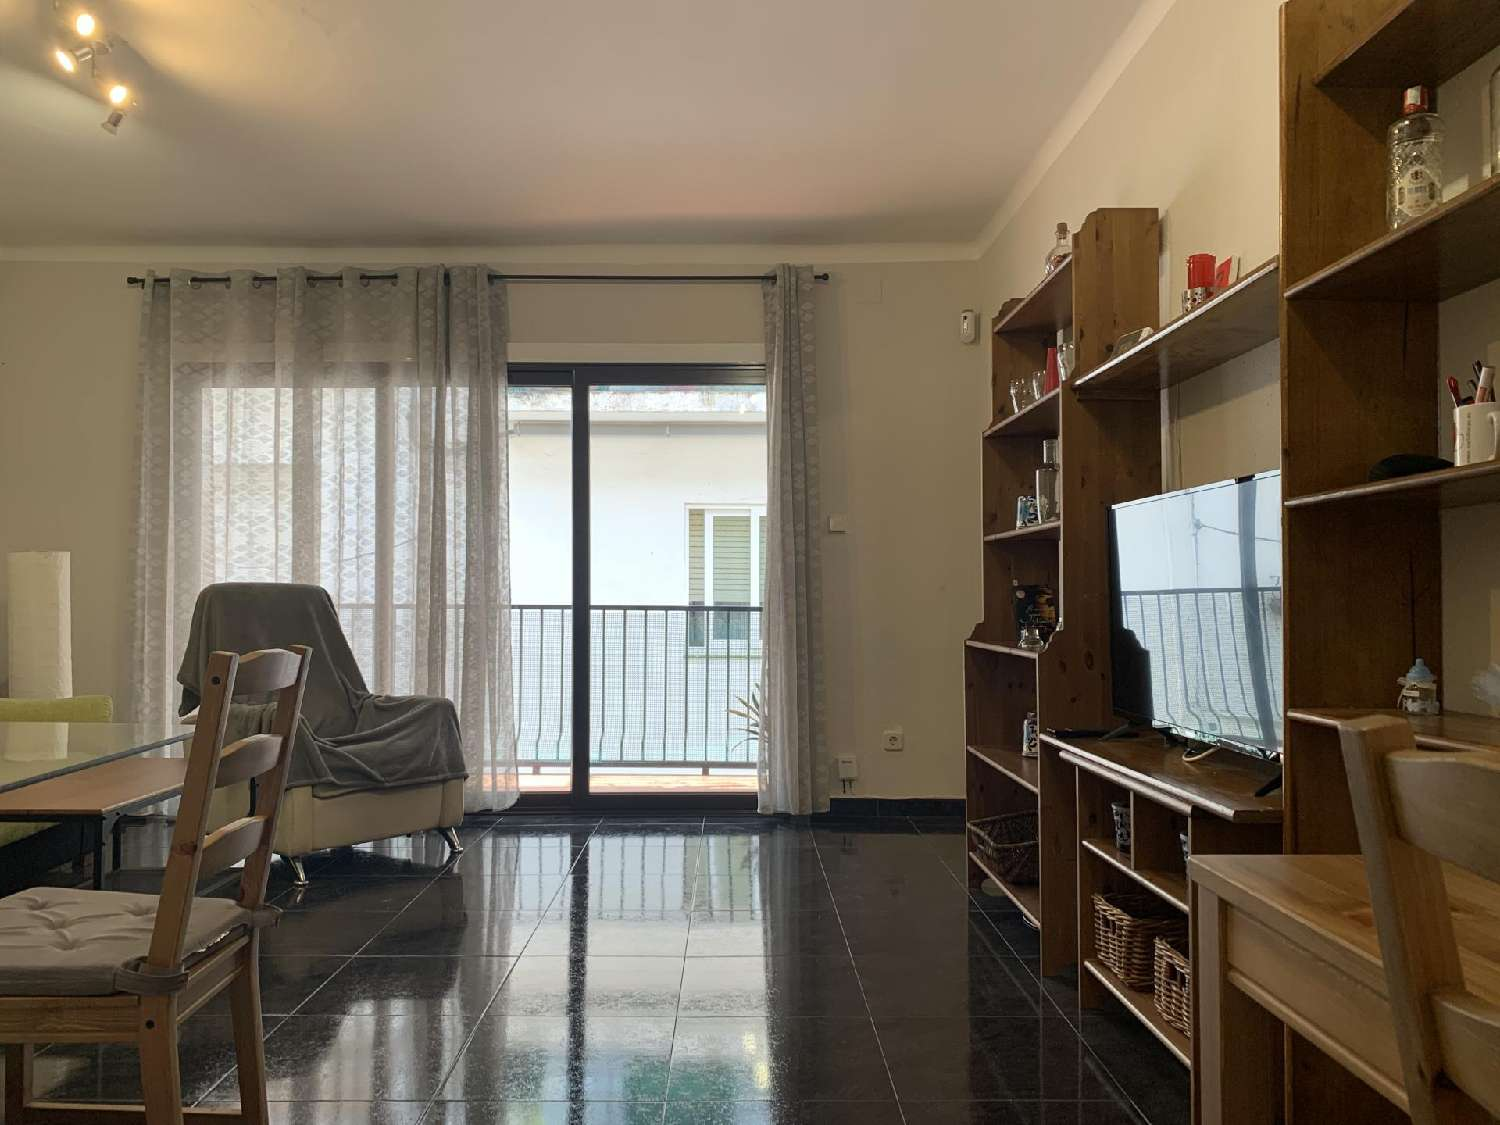 roses girona appartement foto 4652506